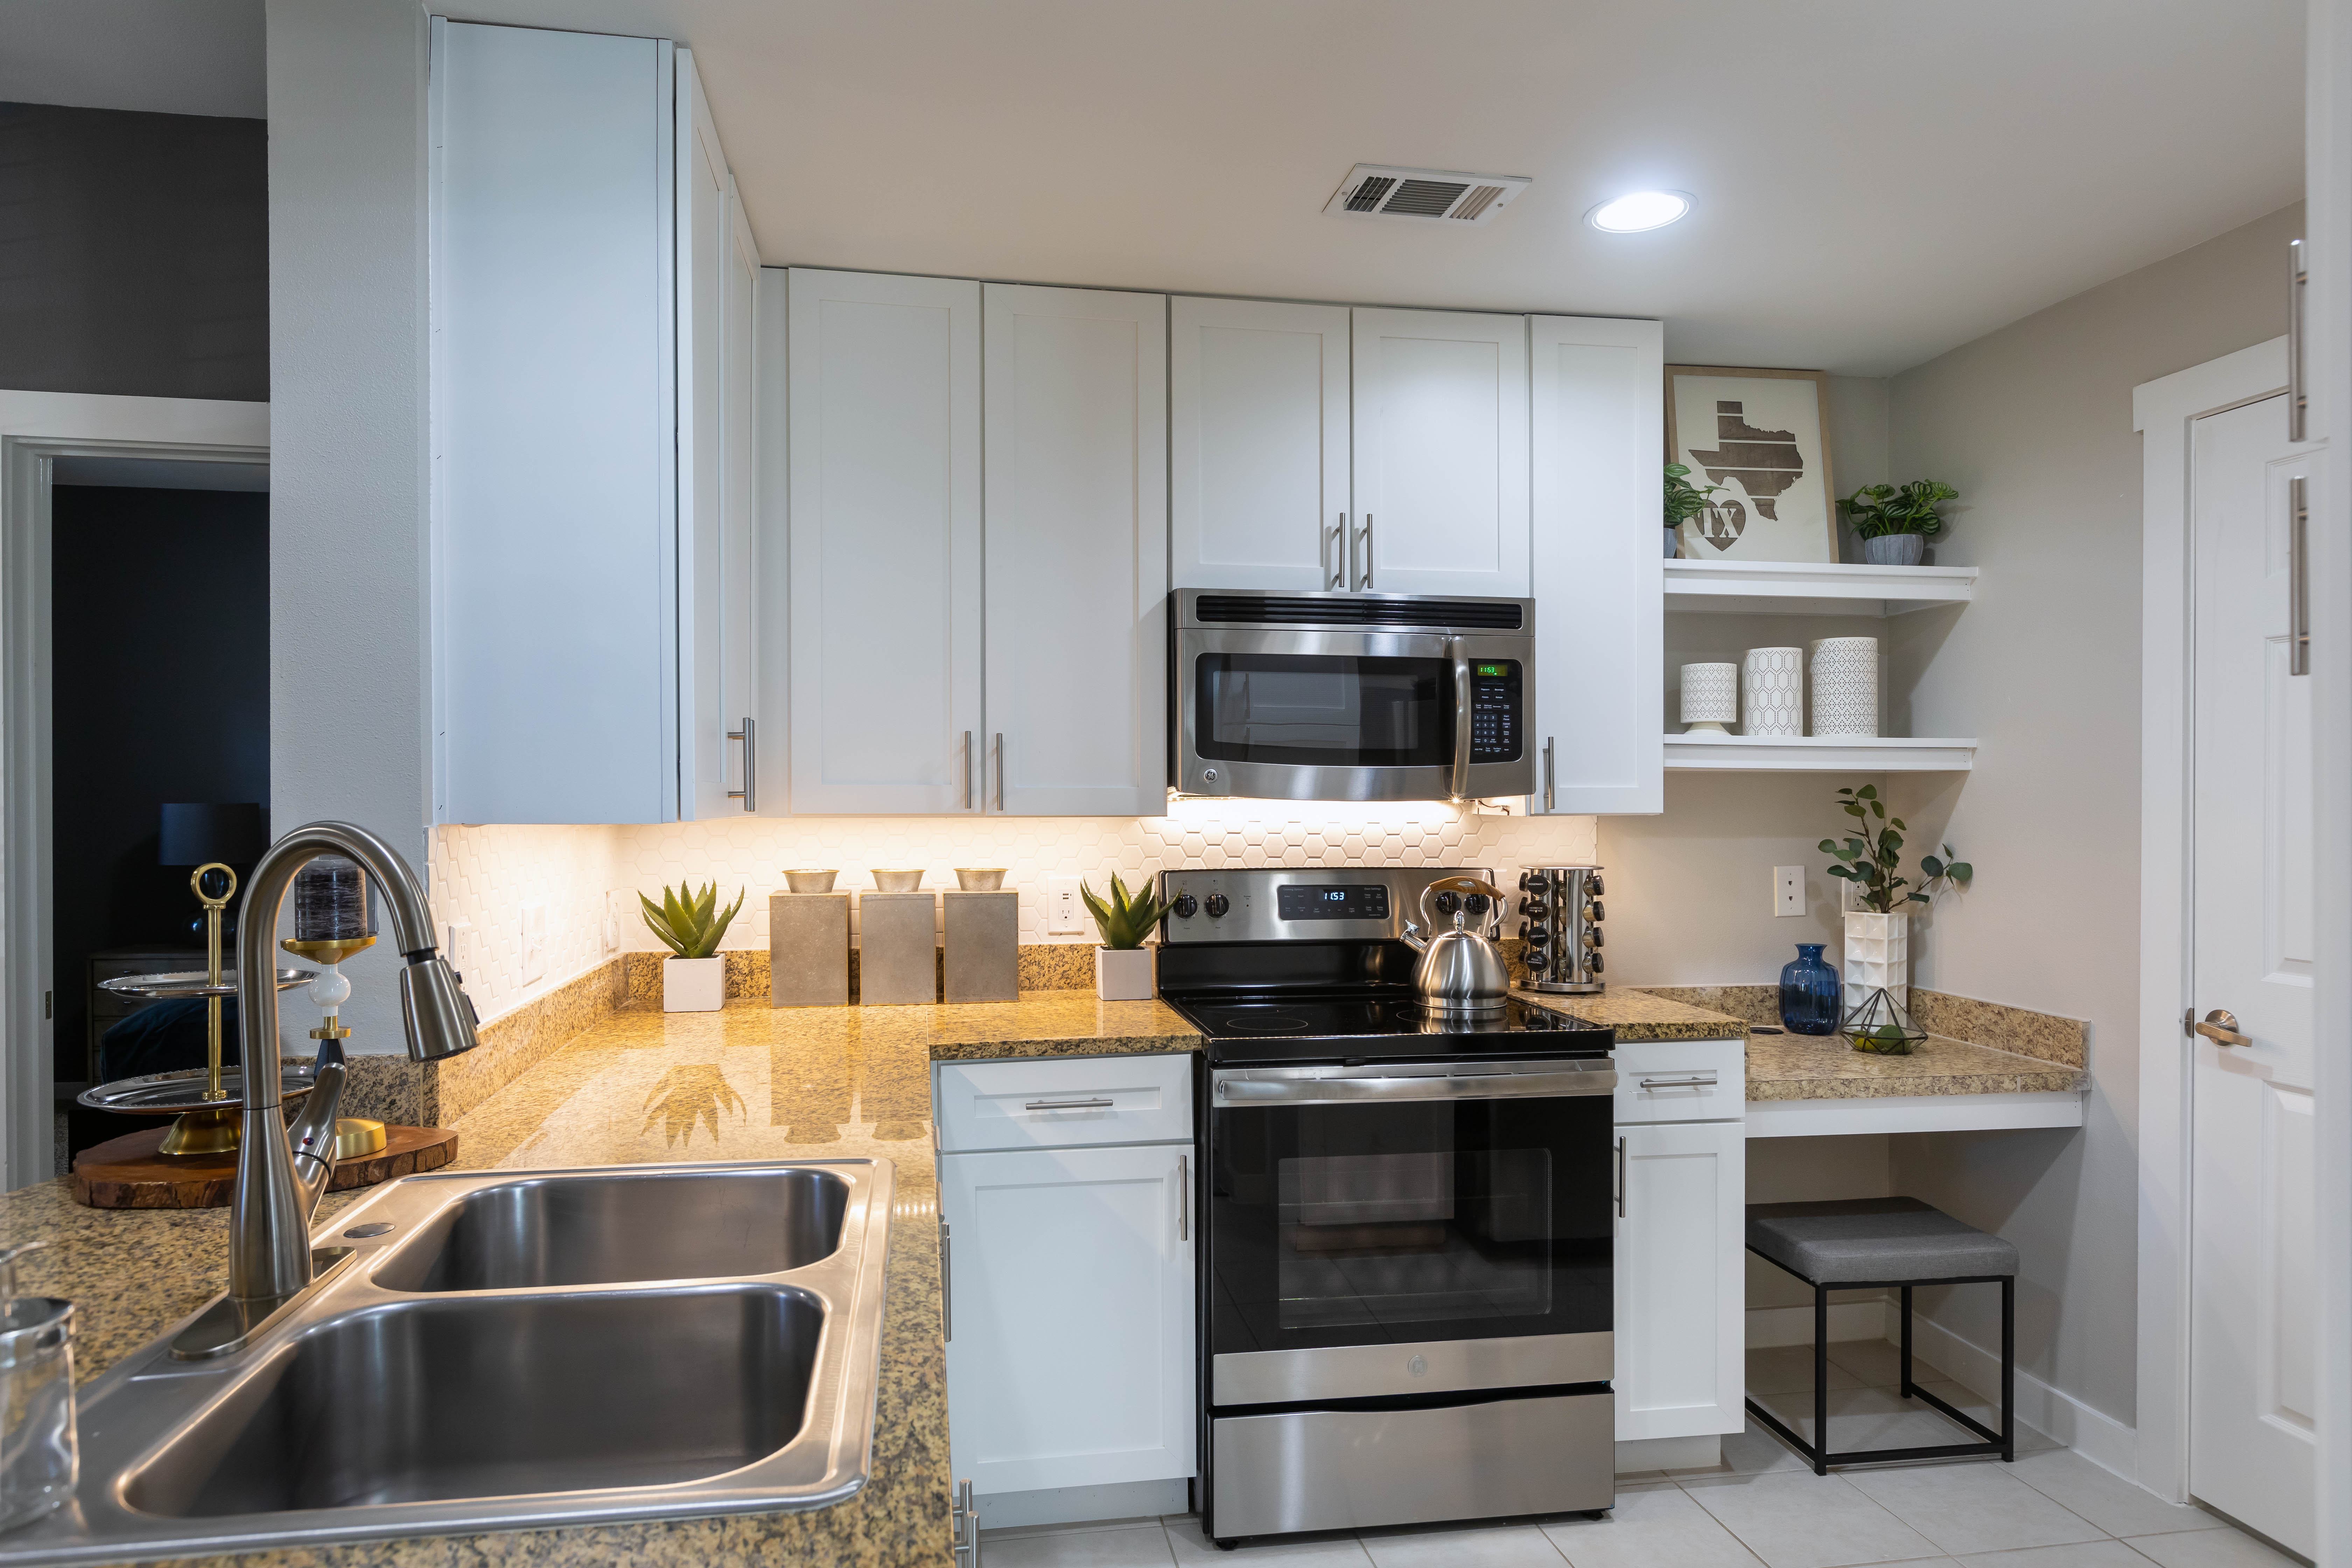 Kitchen with new interiors including Stainless steel appliances